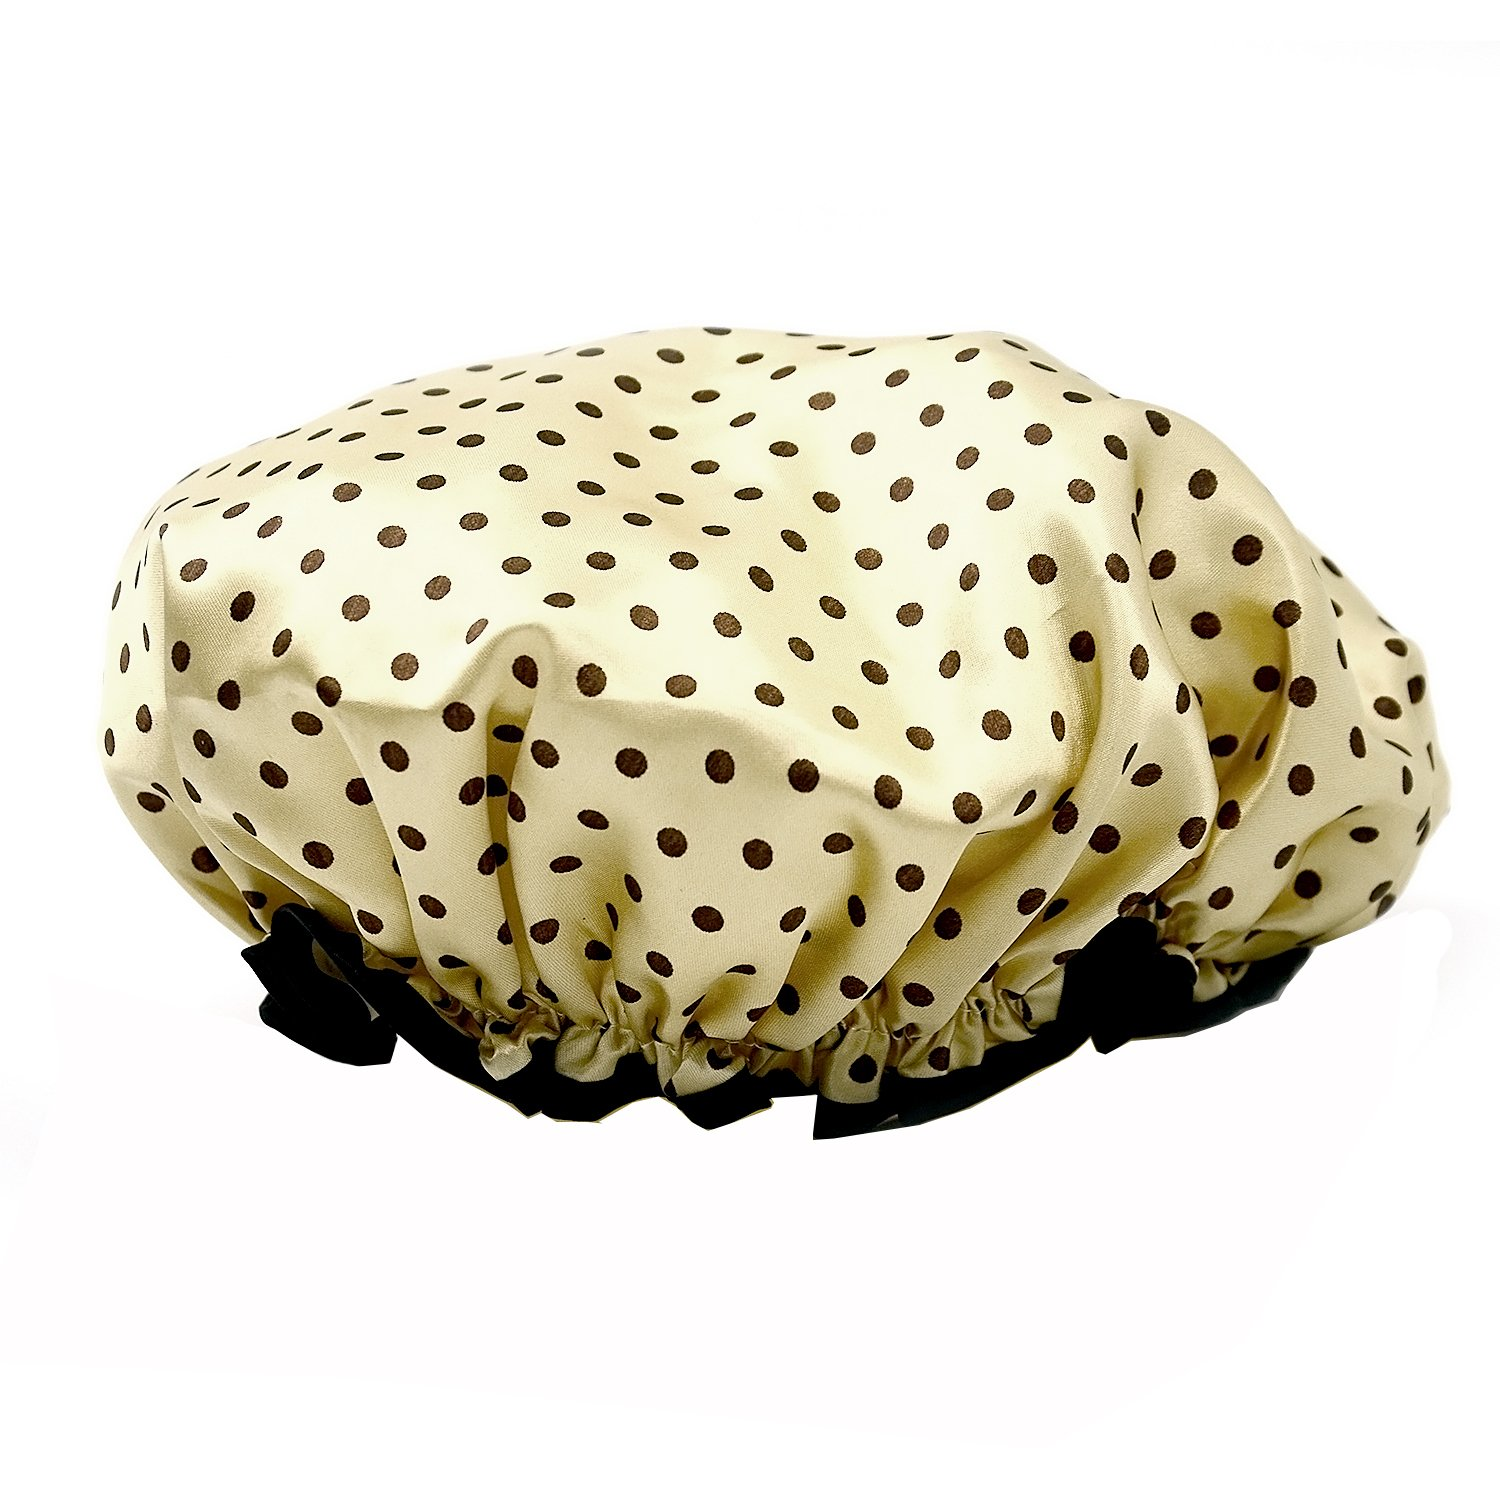 Elisona-Shower Cap, EVA Polka Dot Pattern Waterproof Double Layers Elastic Band Hair Bath Cap Shower Hat